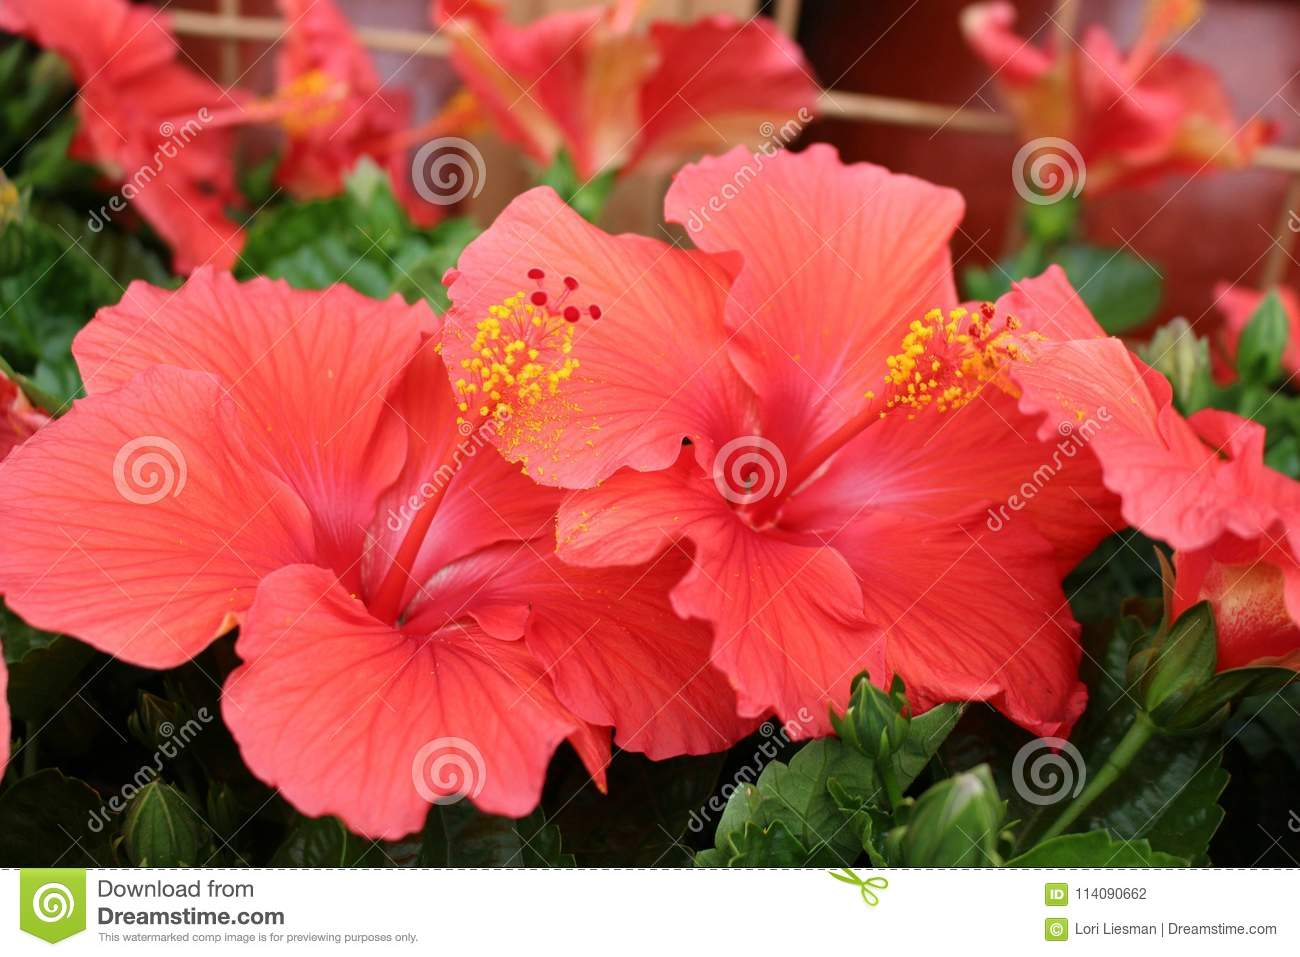 Group of Deep Pink Hibiscus Flowers in a Garden